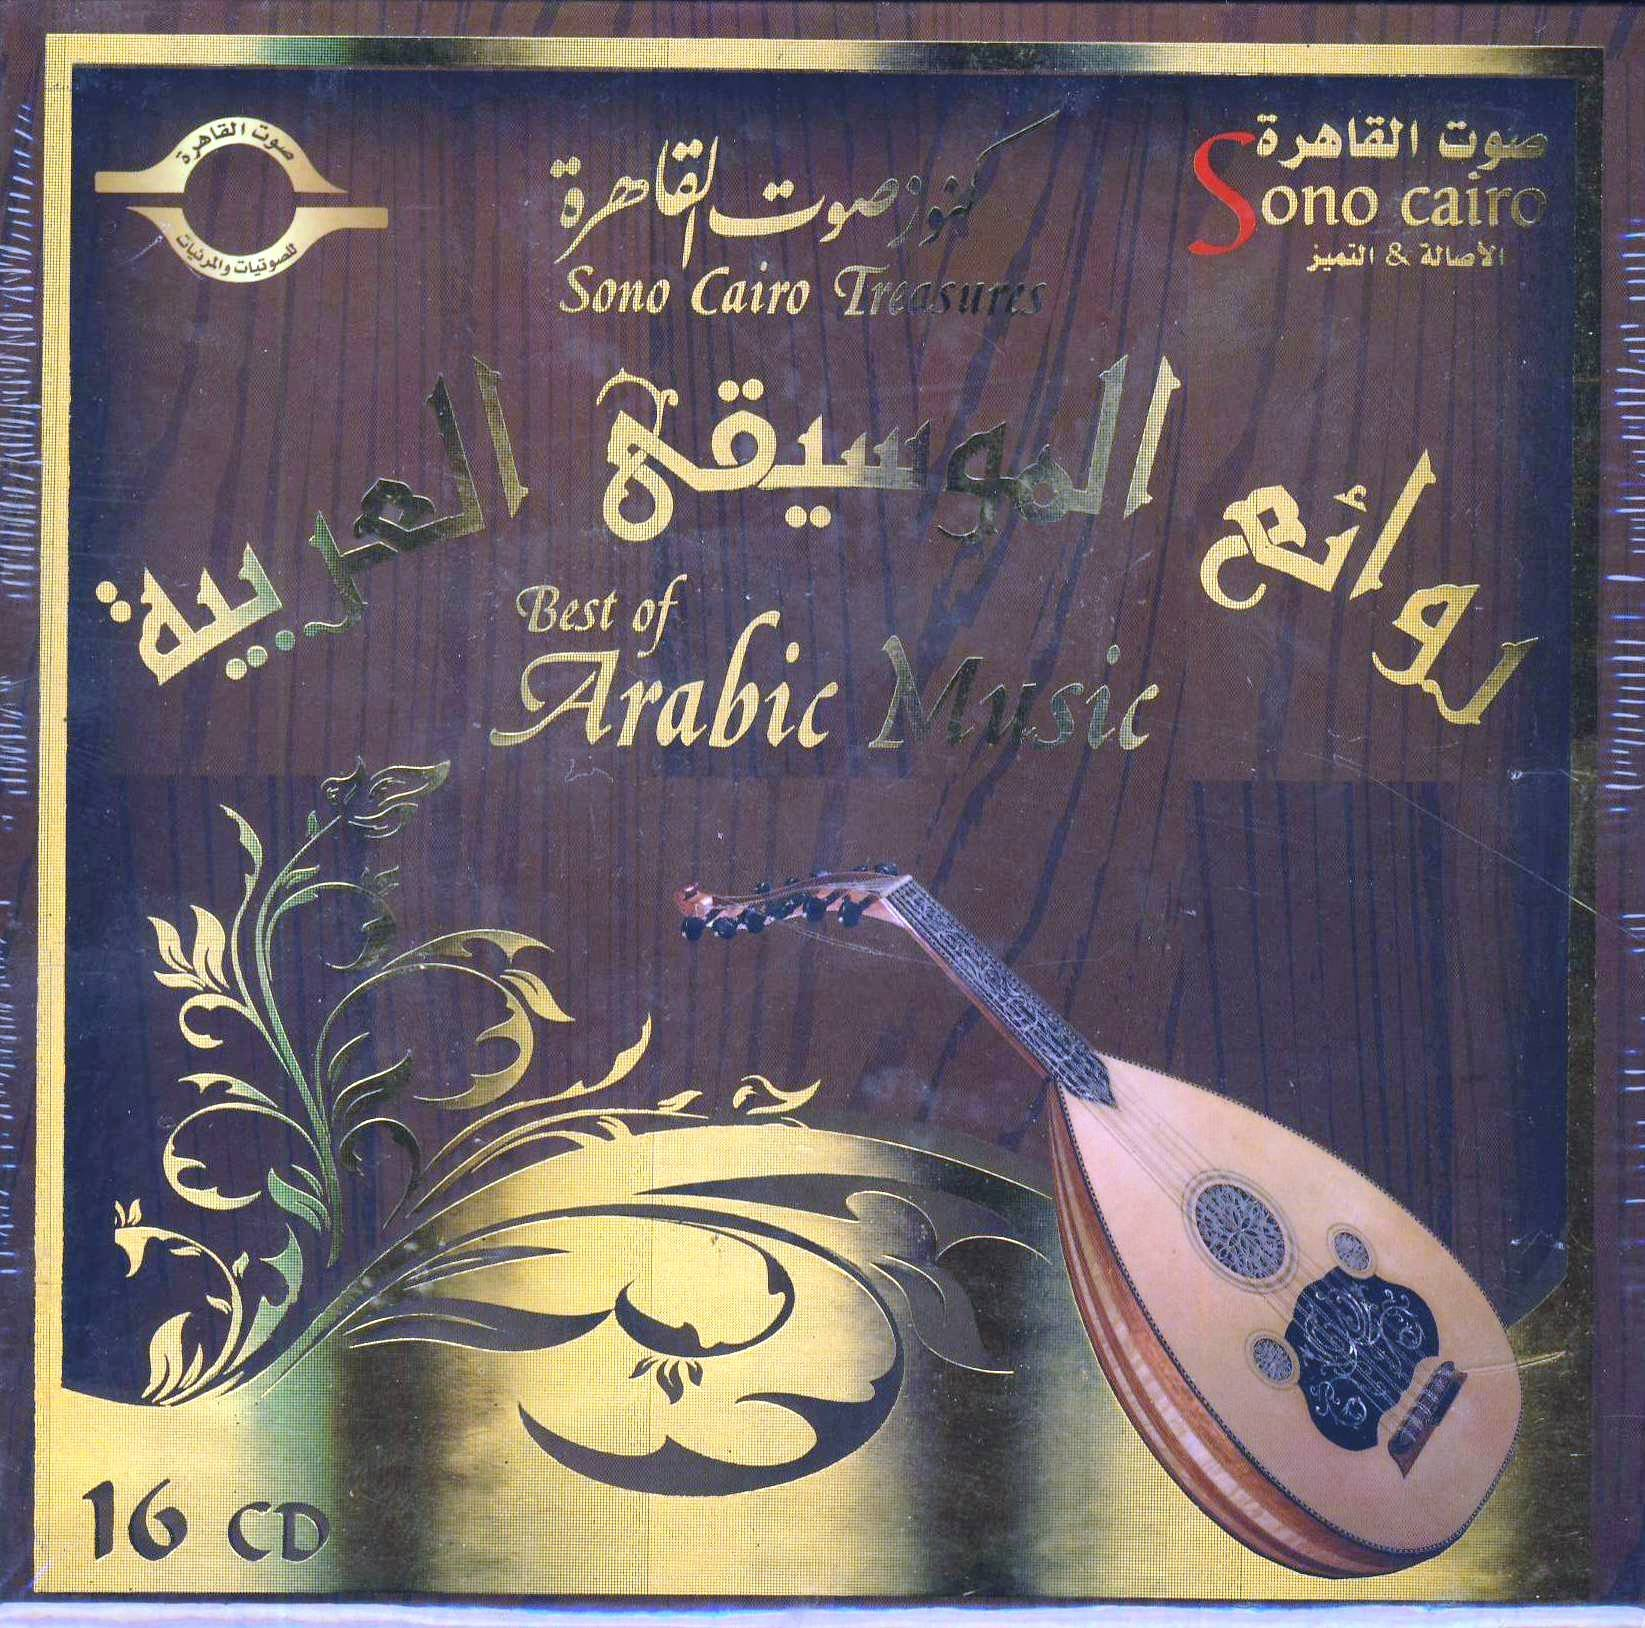 Sono Cairo Treasures Vol.1 - Best of Arabic Music by MBI